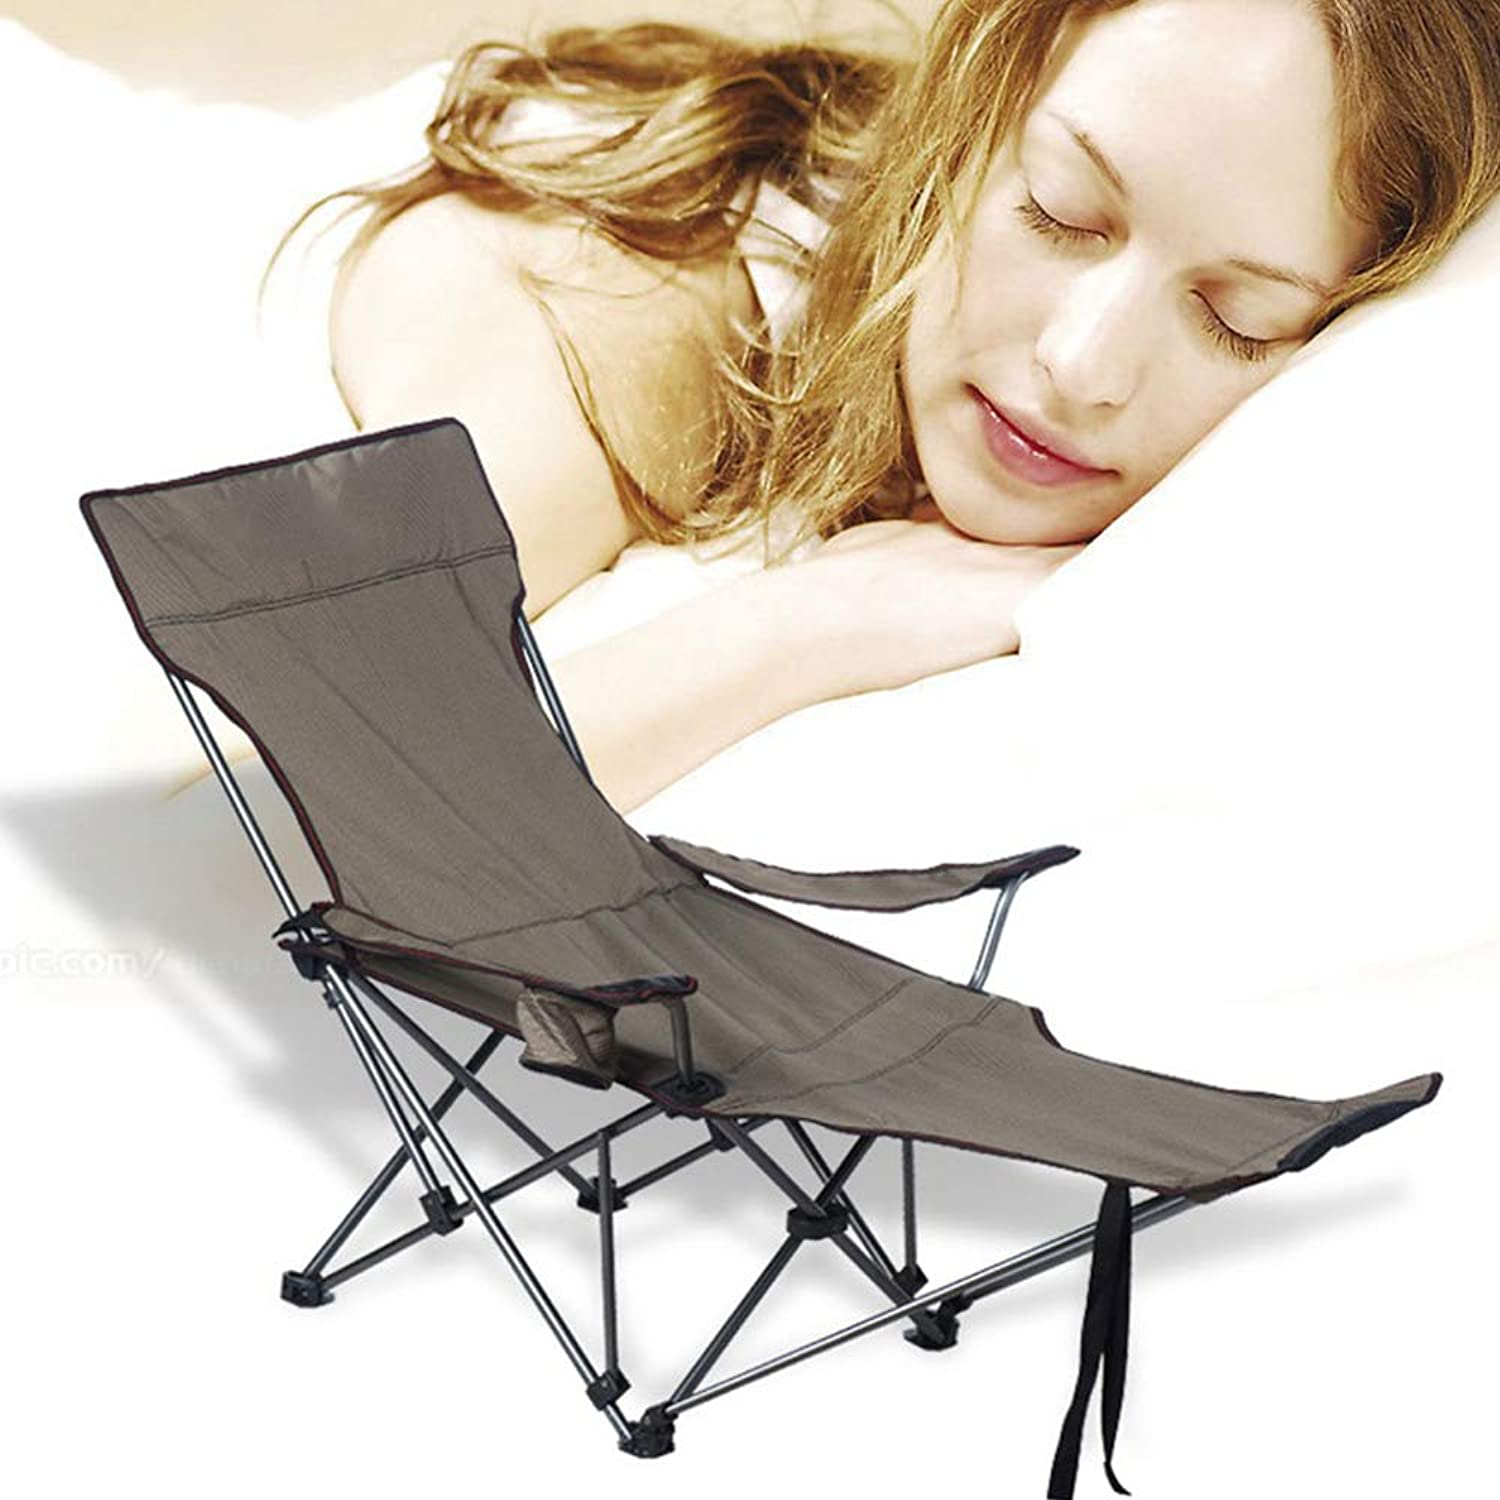 Folding Camping Chair Adjustable Recliner with footrest, for Camping Hiking Beach Fishing Garden, Supports up to 330 lbs